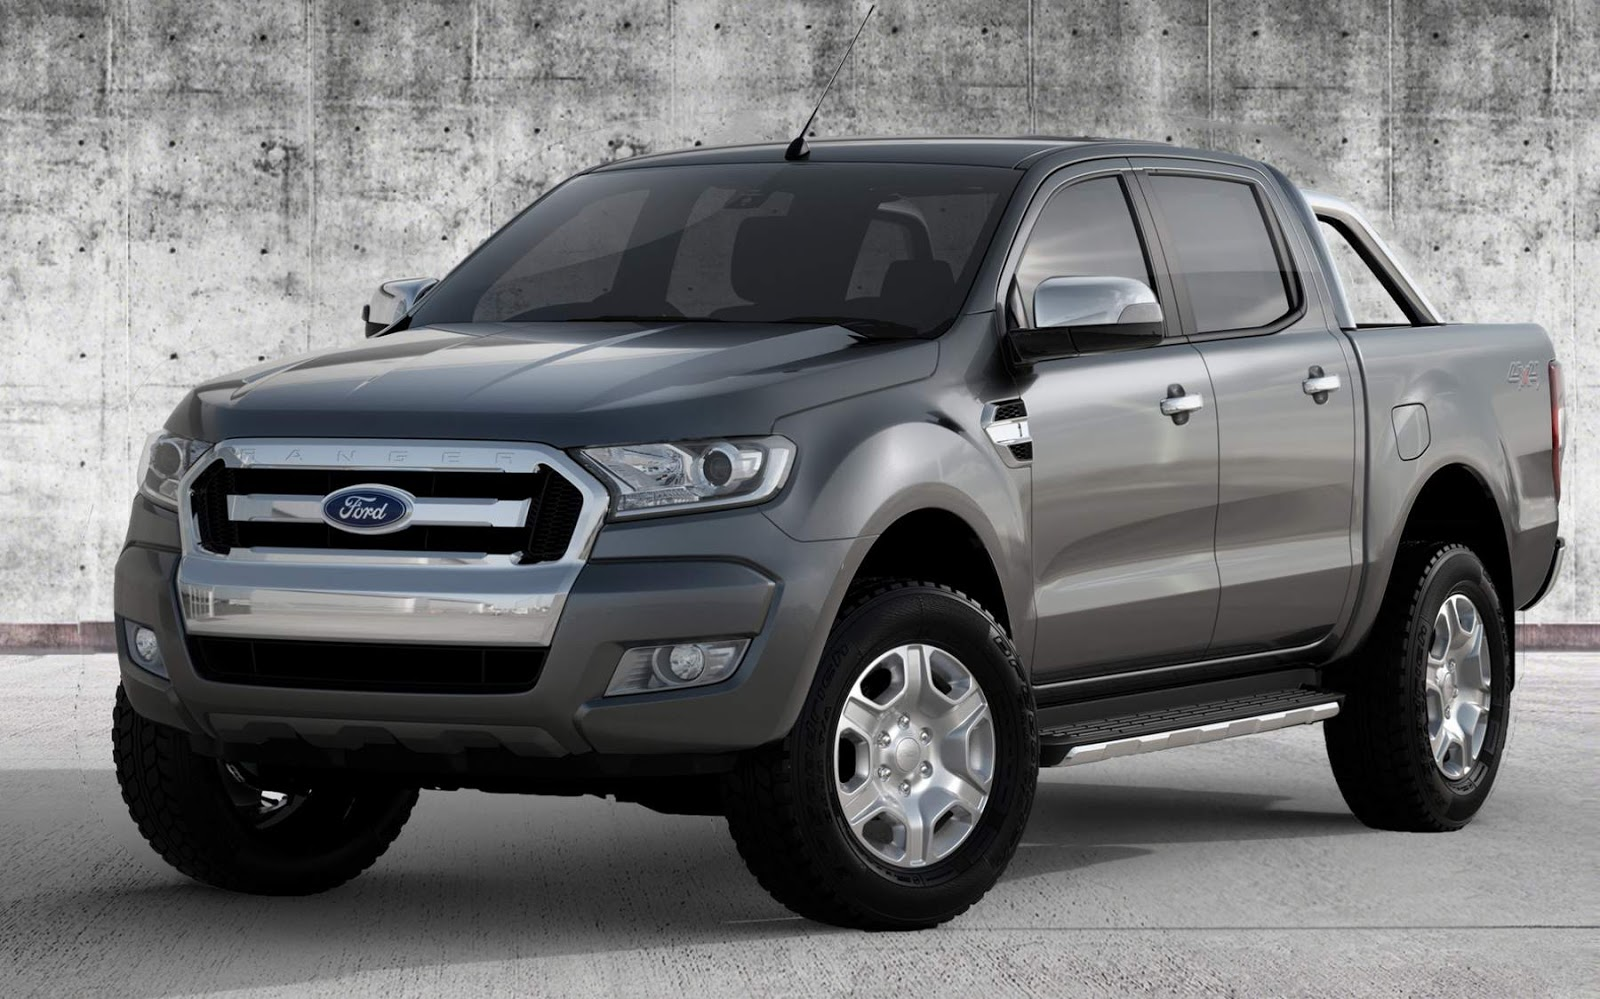 nova ford ranger 2016 foto e v deo oficial s o divulgados. Black Bedroom Furniture Sets. Home Design Ideas